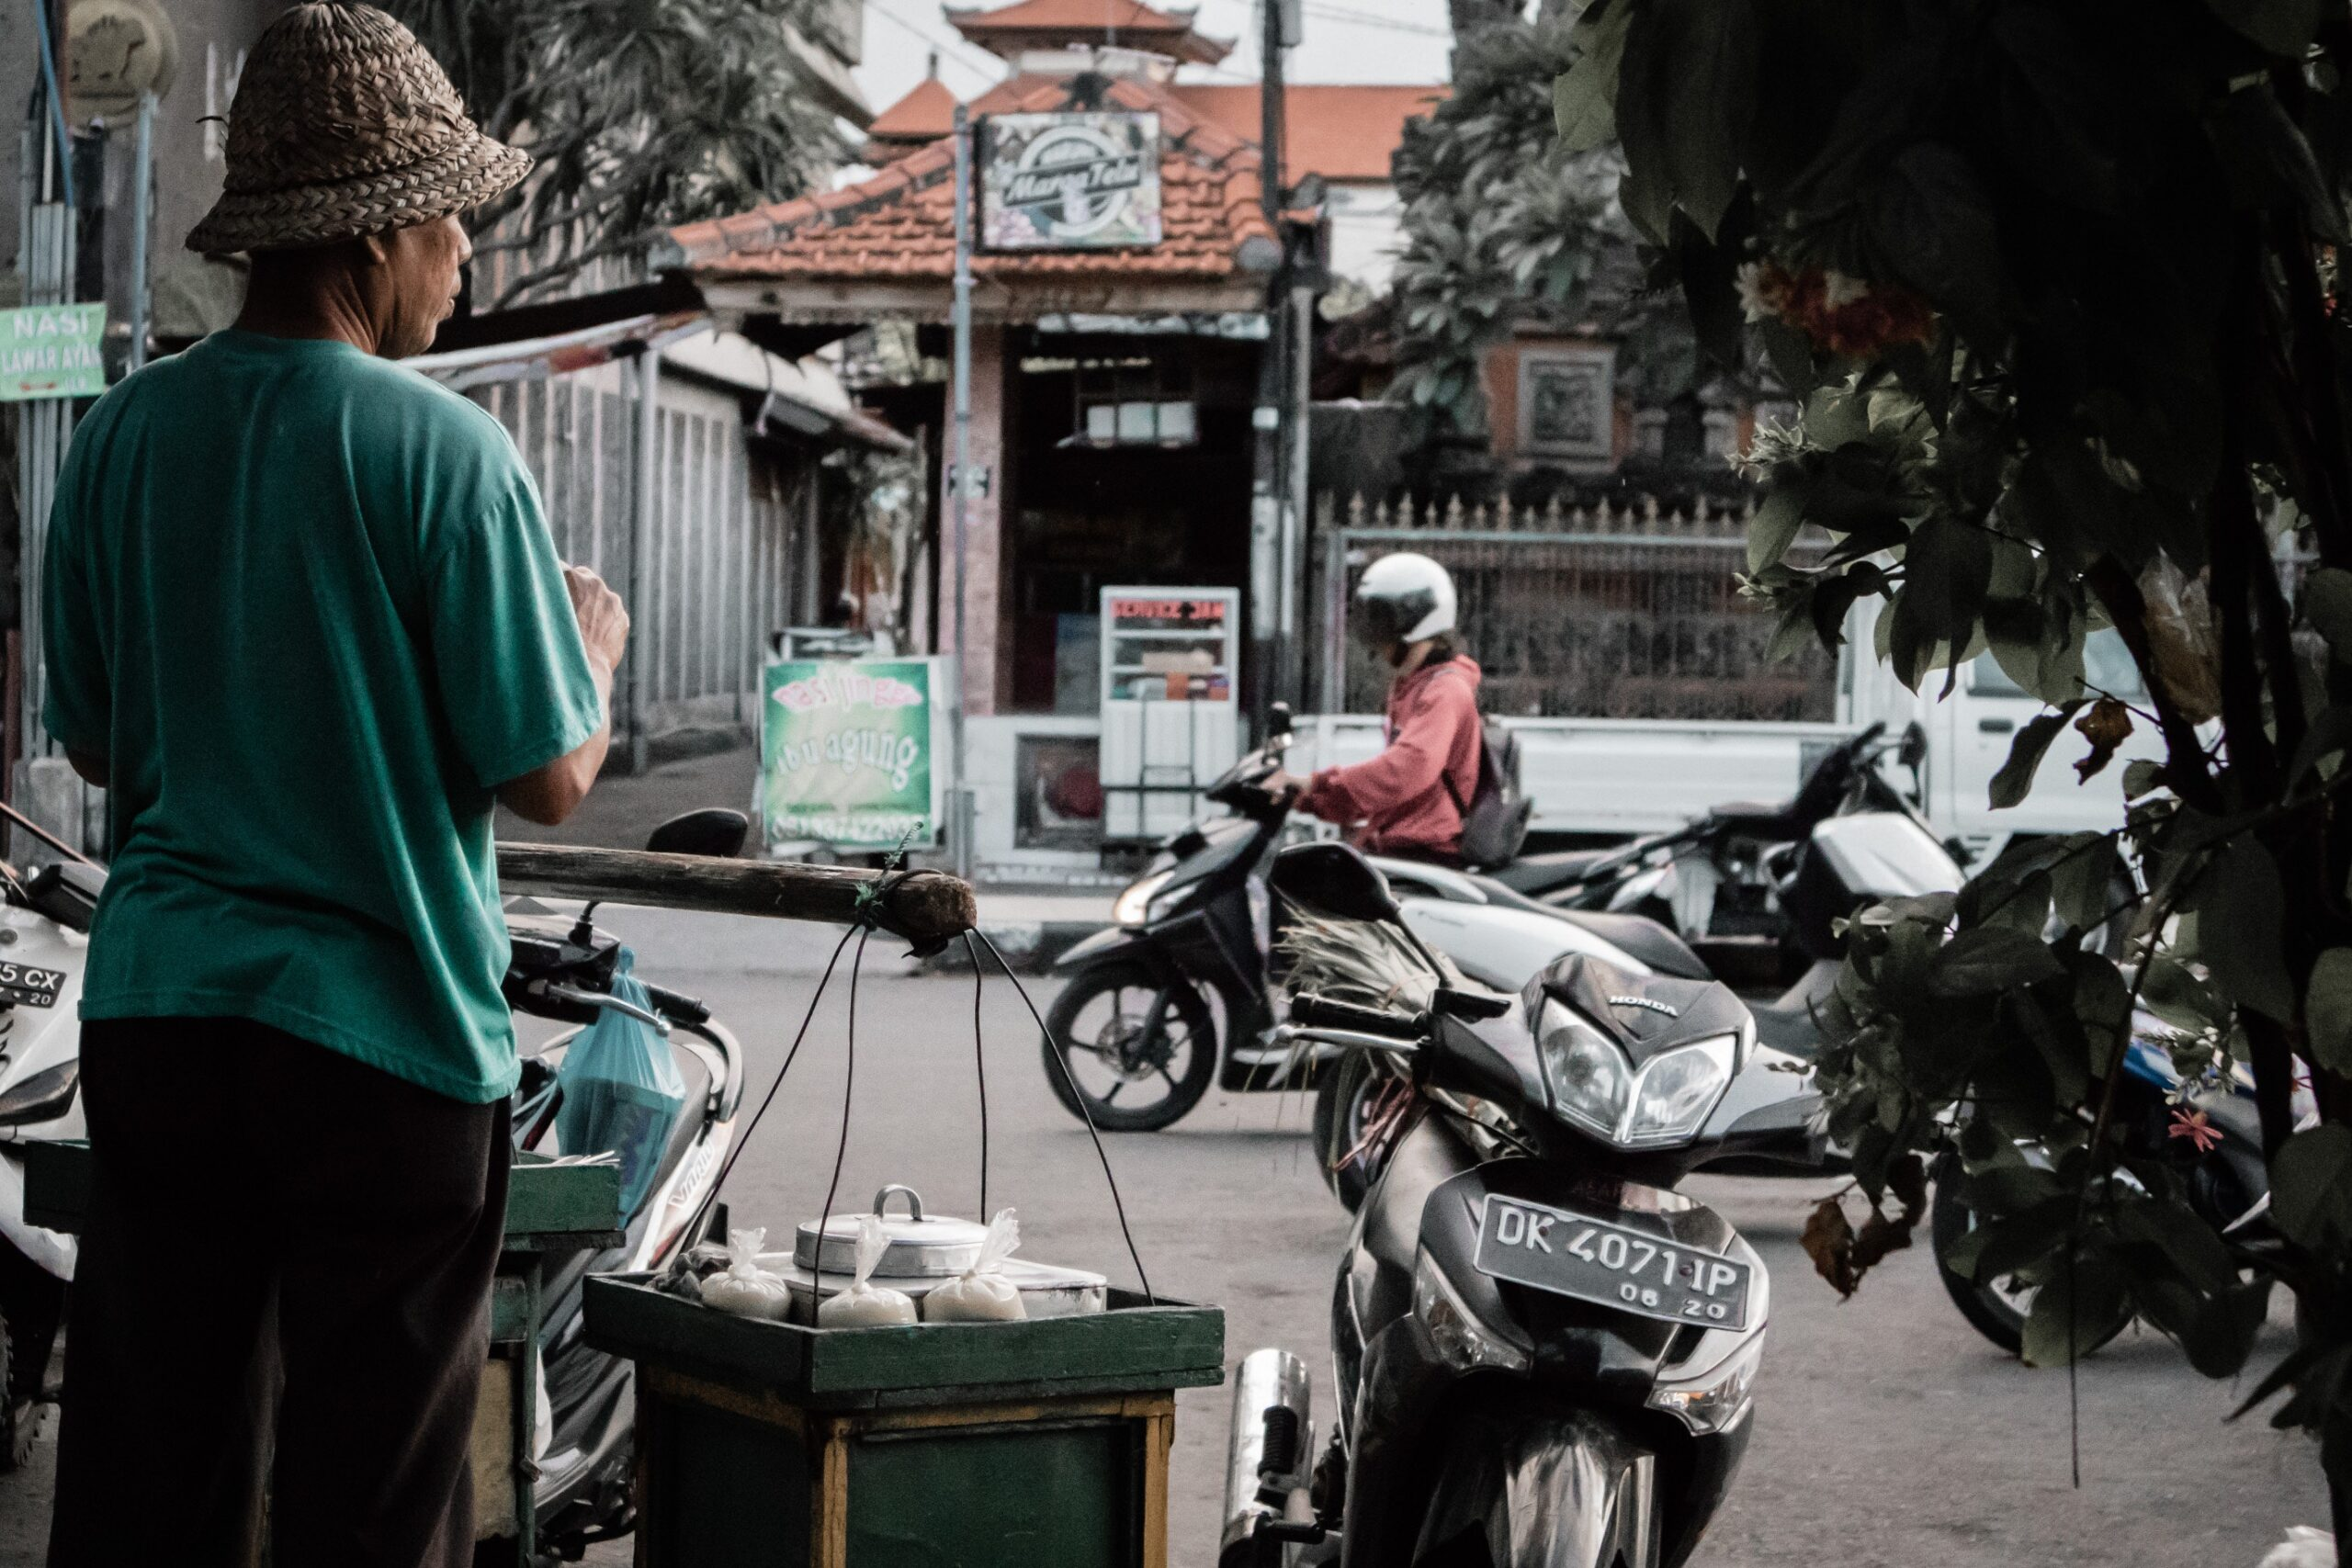 Travelers Guide to Healthcare in Indonesia